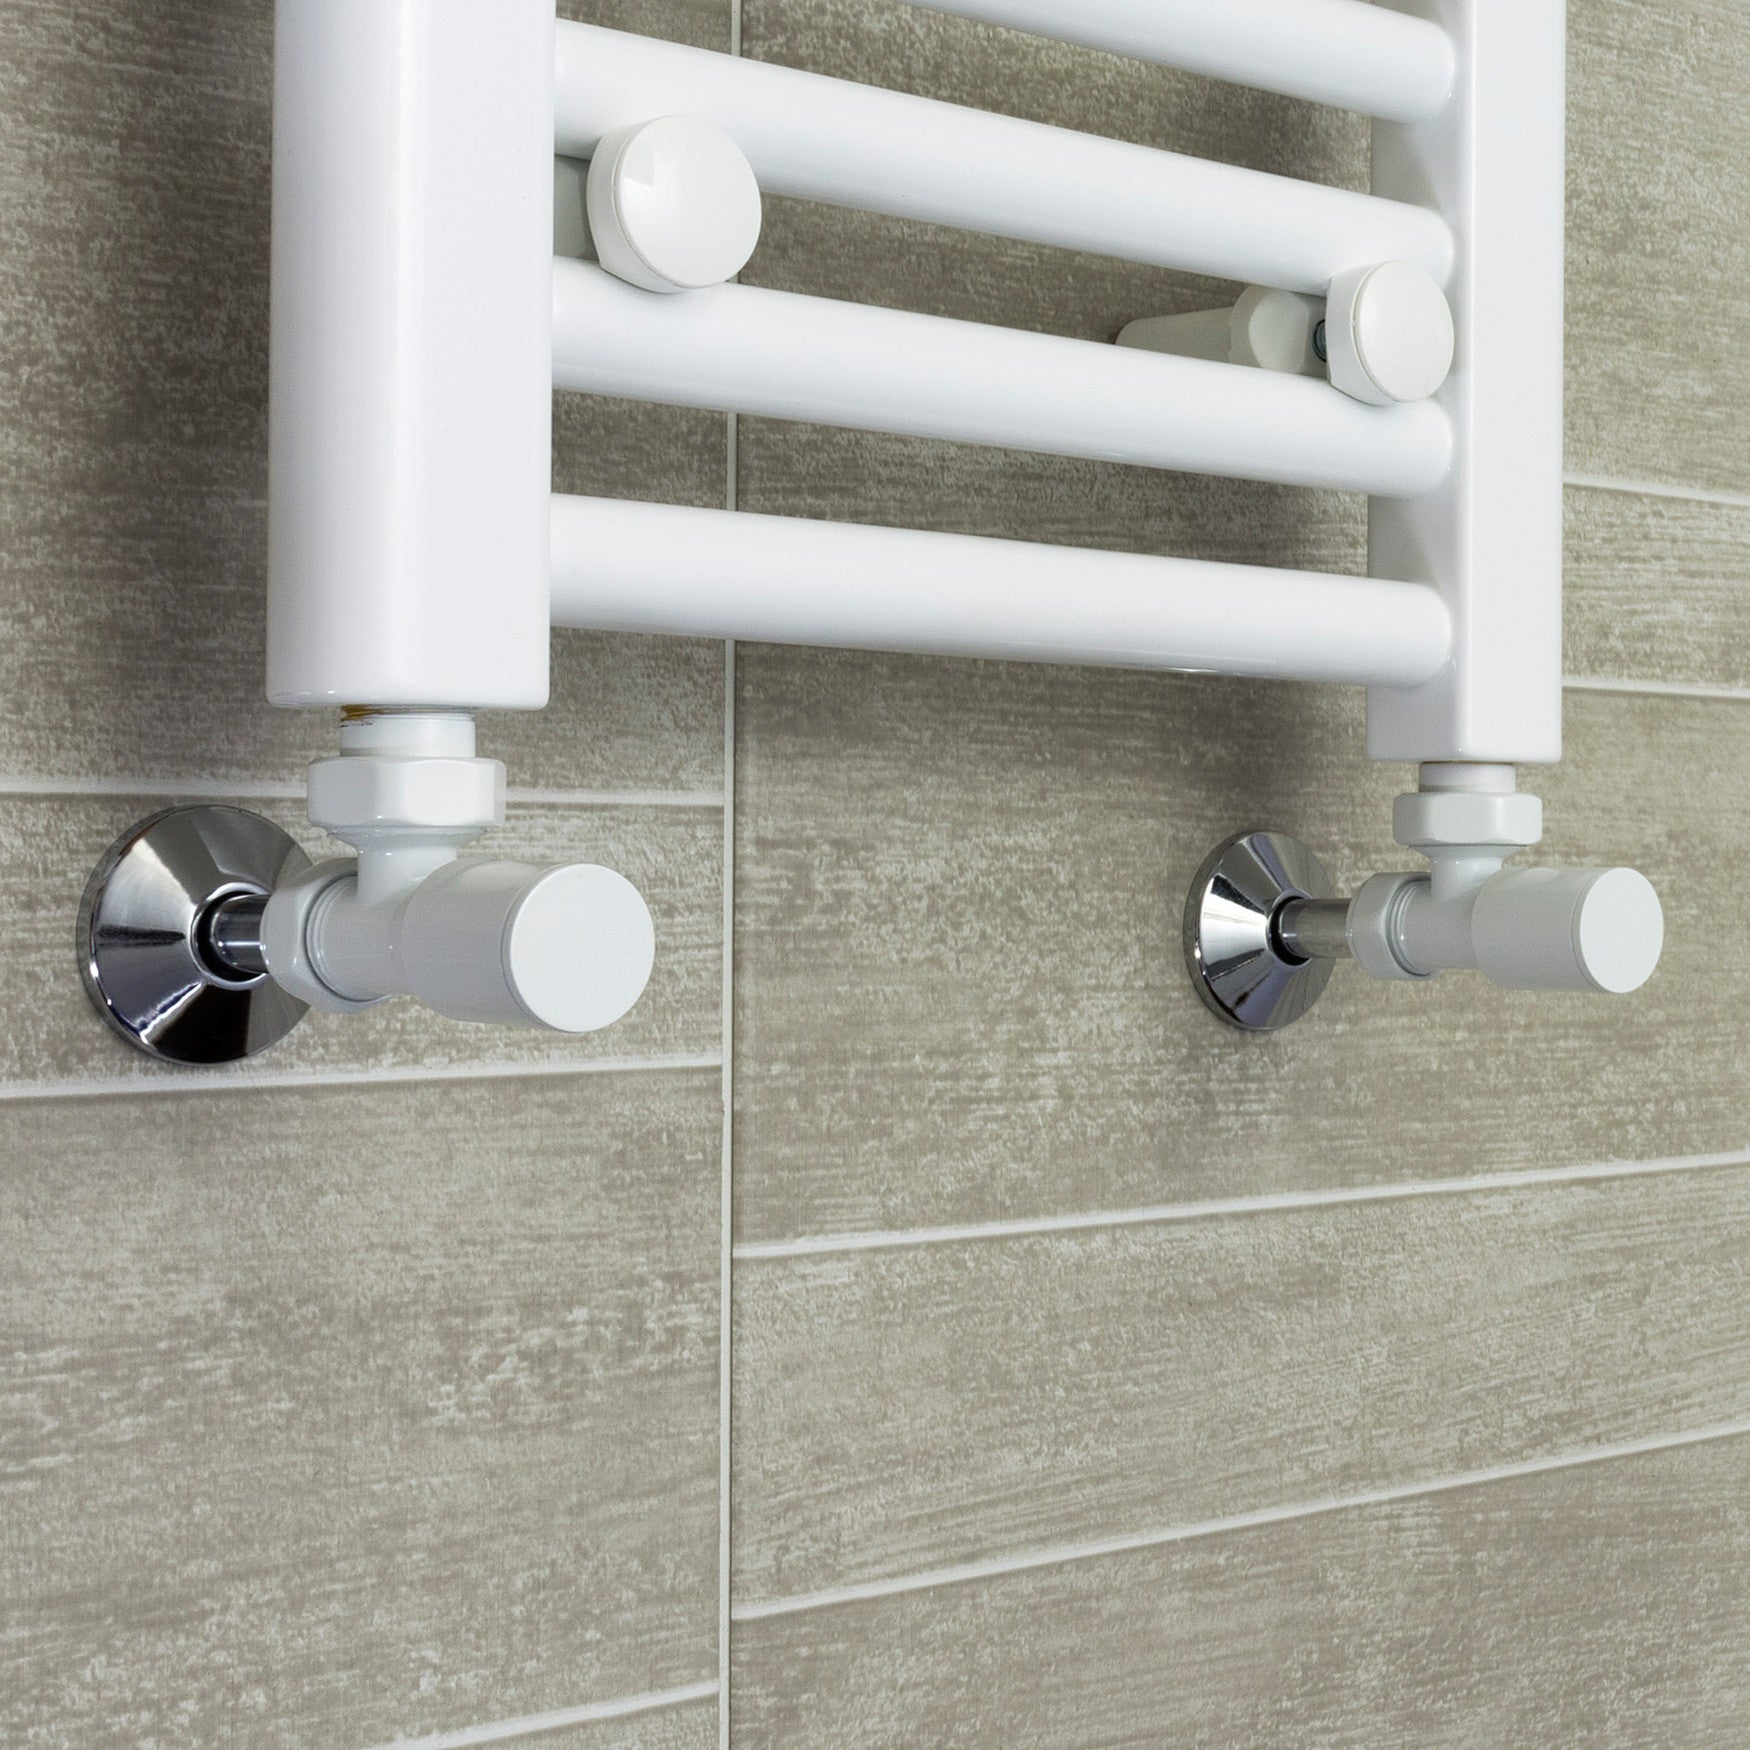 700mm Wide 1700mm High White Towel Rail Radiator With Angled Valve